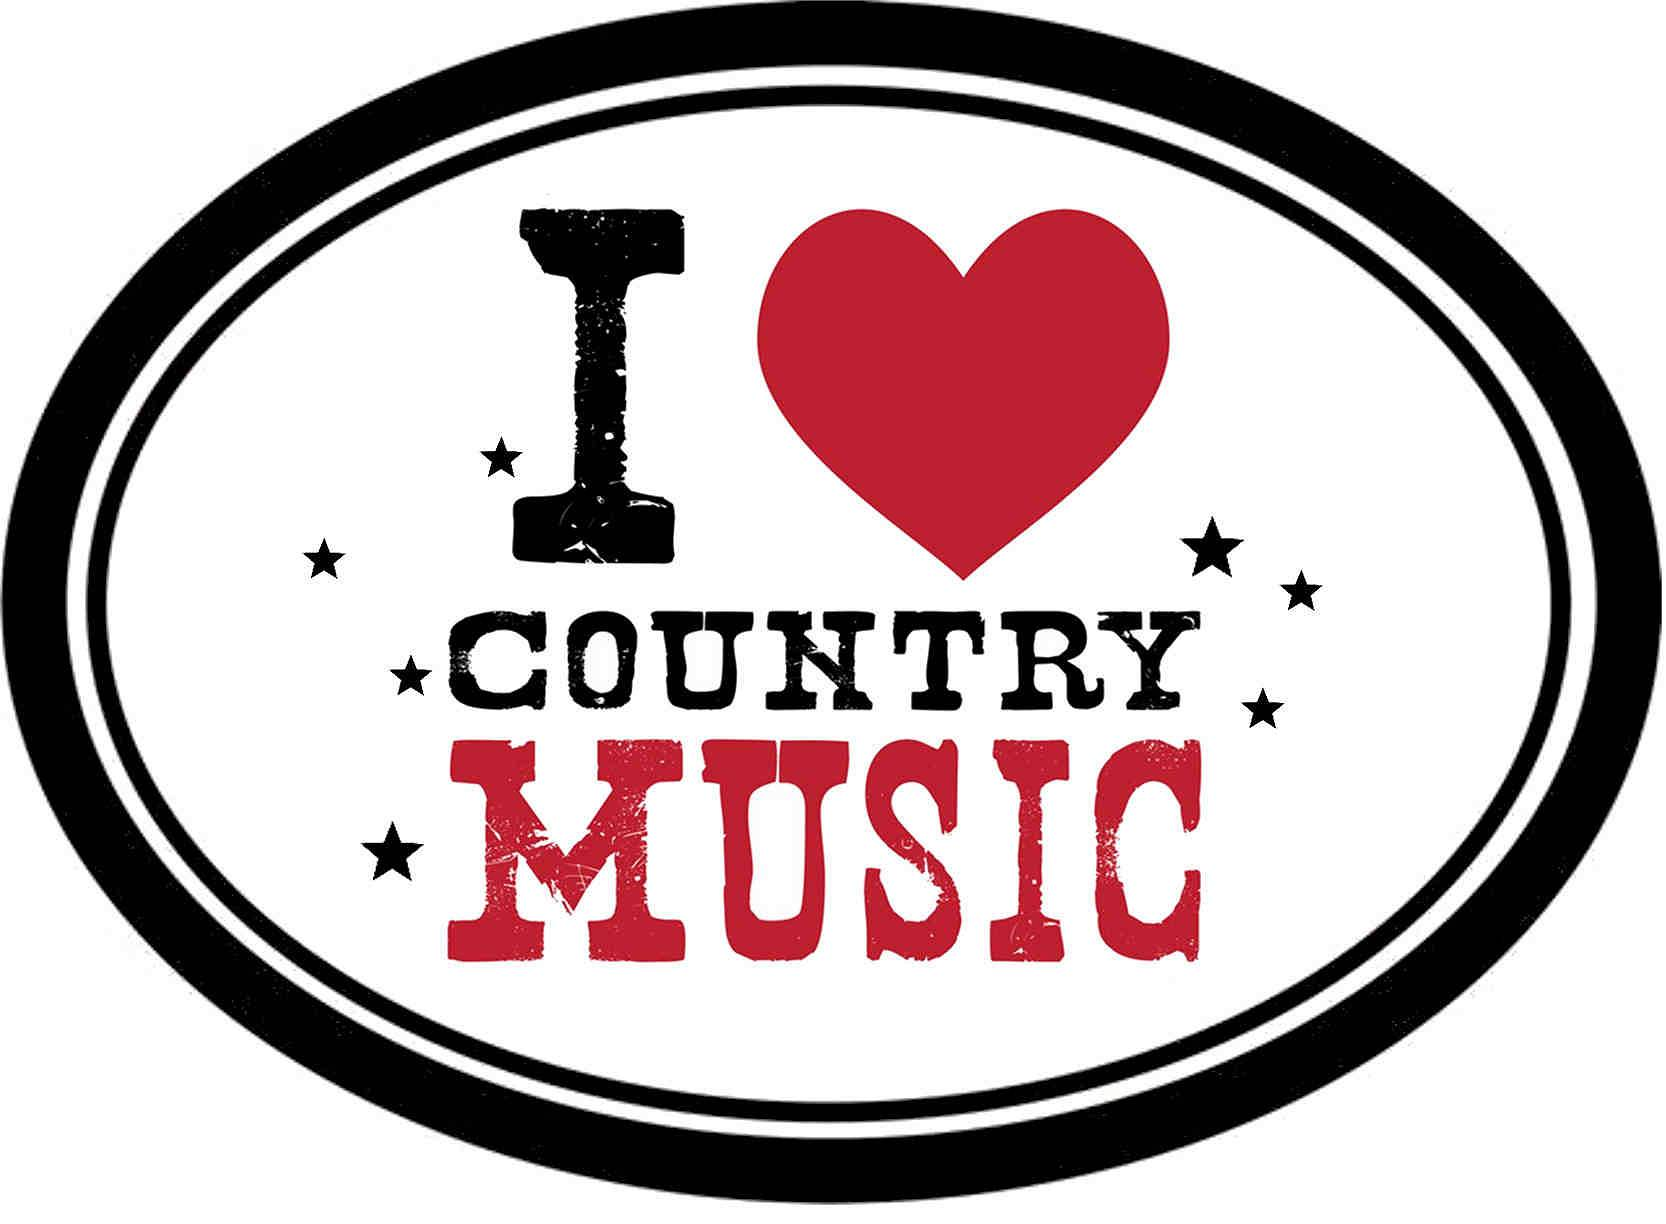 naklejka I LIKE COUNTRY MUSIC